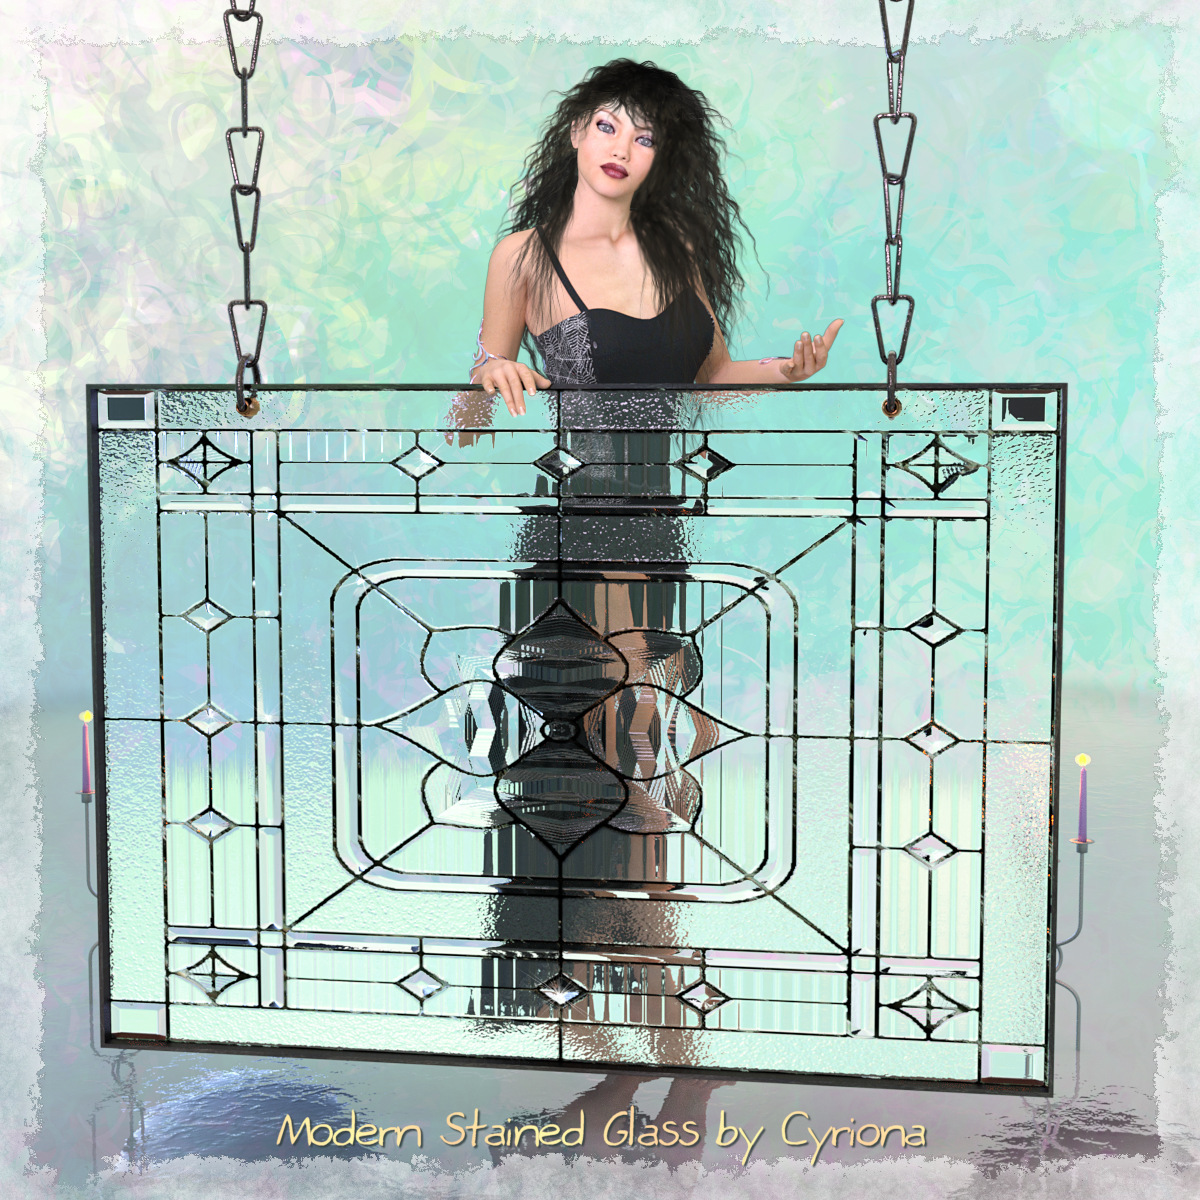 Modern Stained Glass by Cyriona